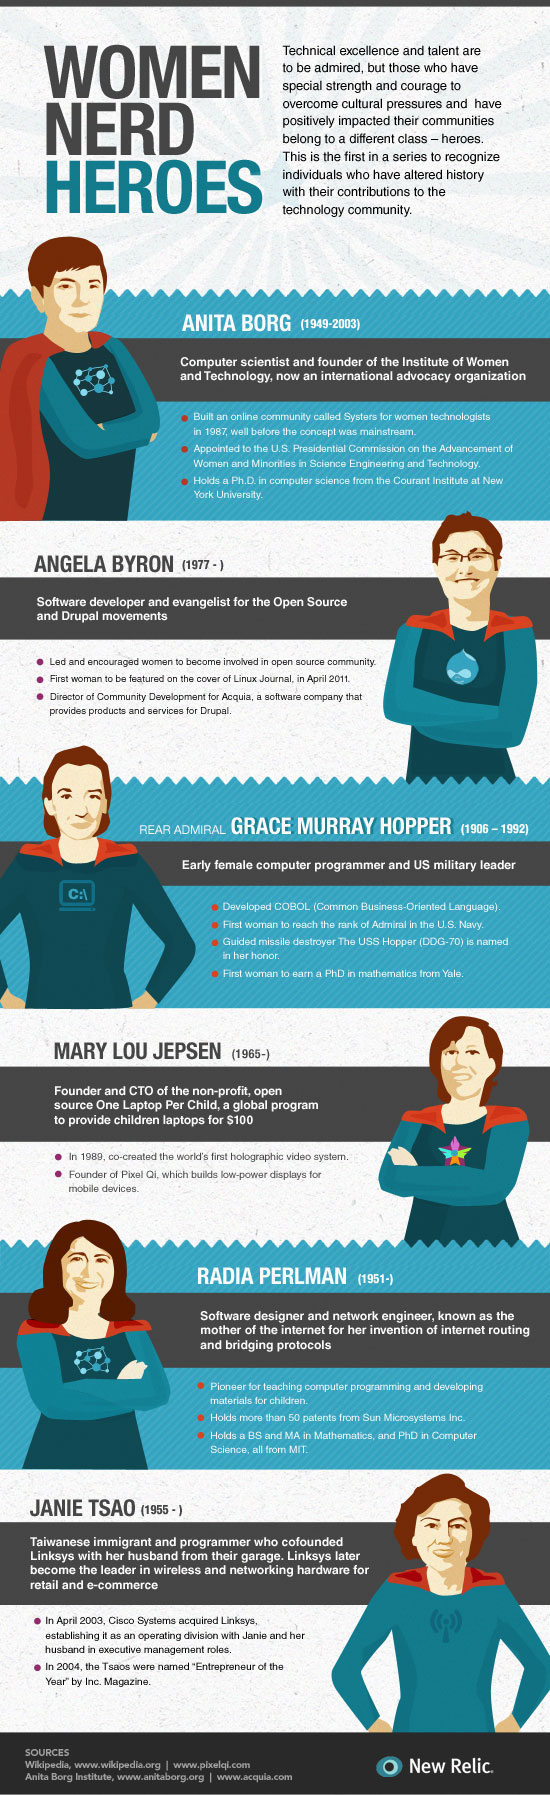 Women-Nerd-Heroes_New Relic